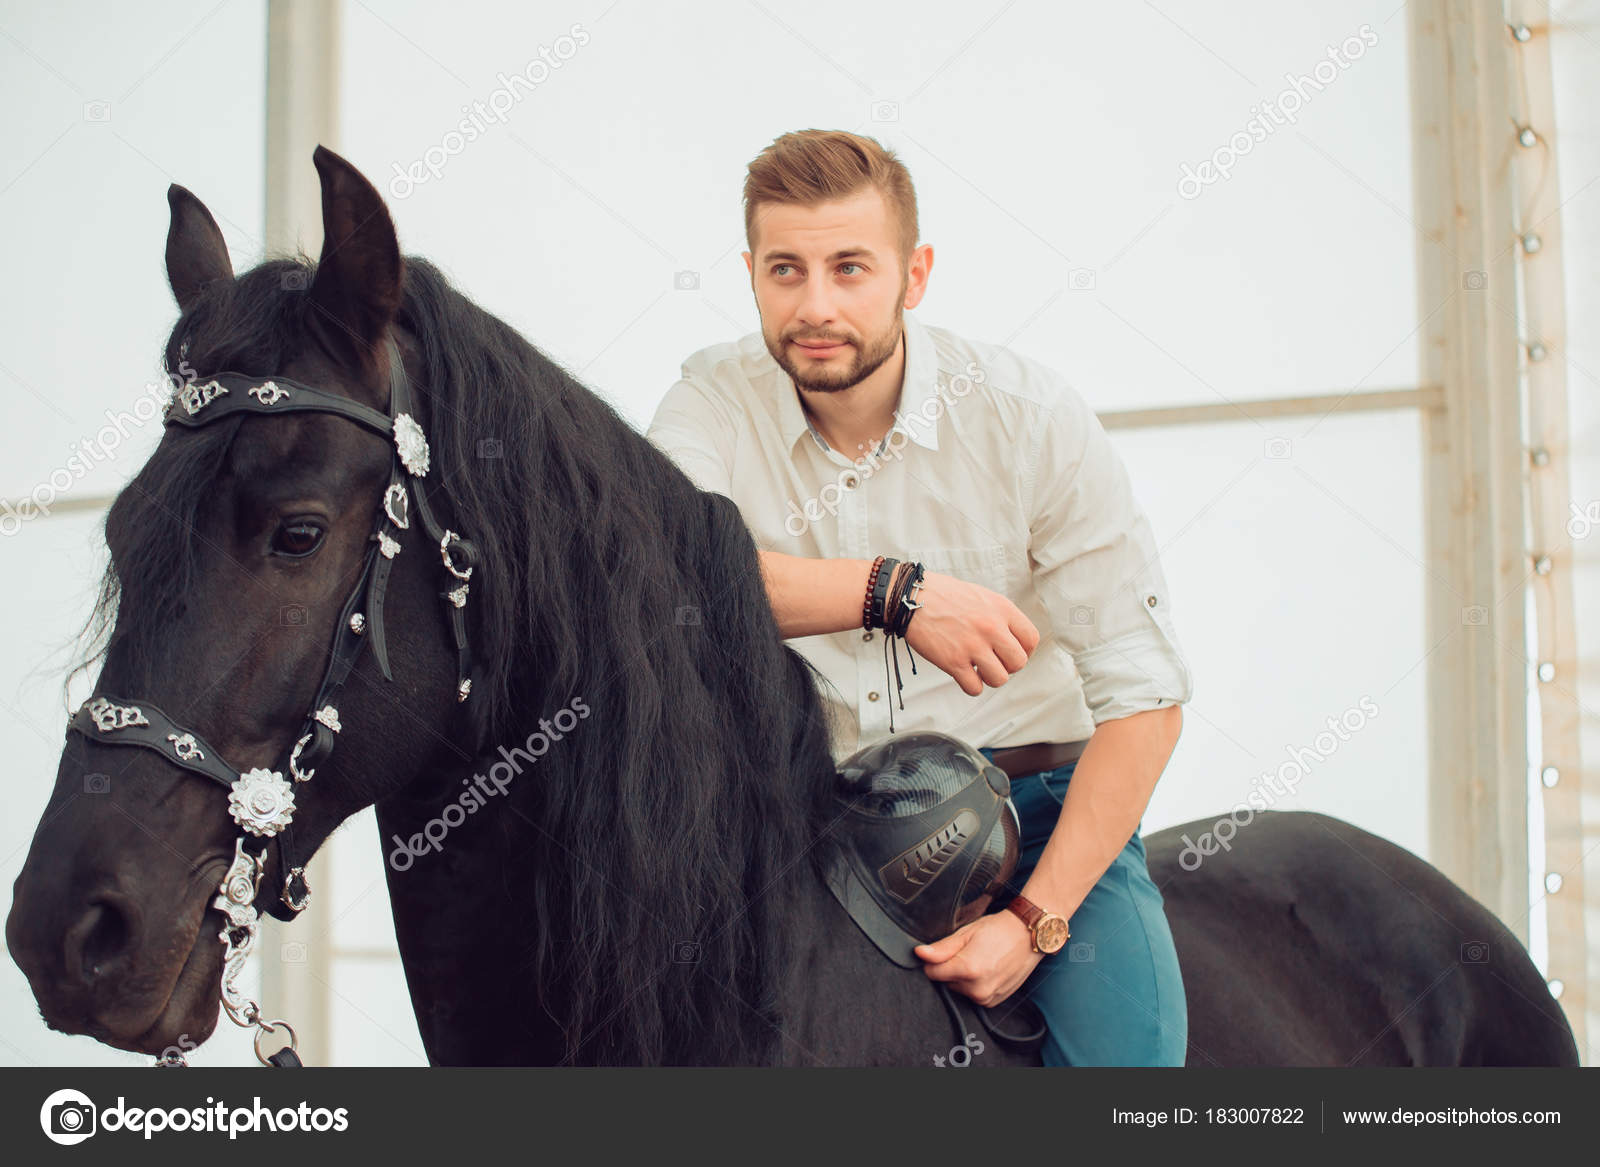 Male Model Horse Stock Photos Royalty Free Male Model Horse Images Depositphotos